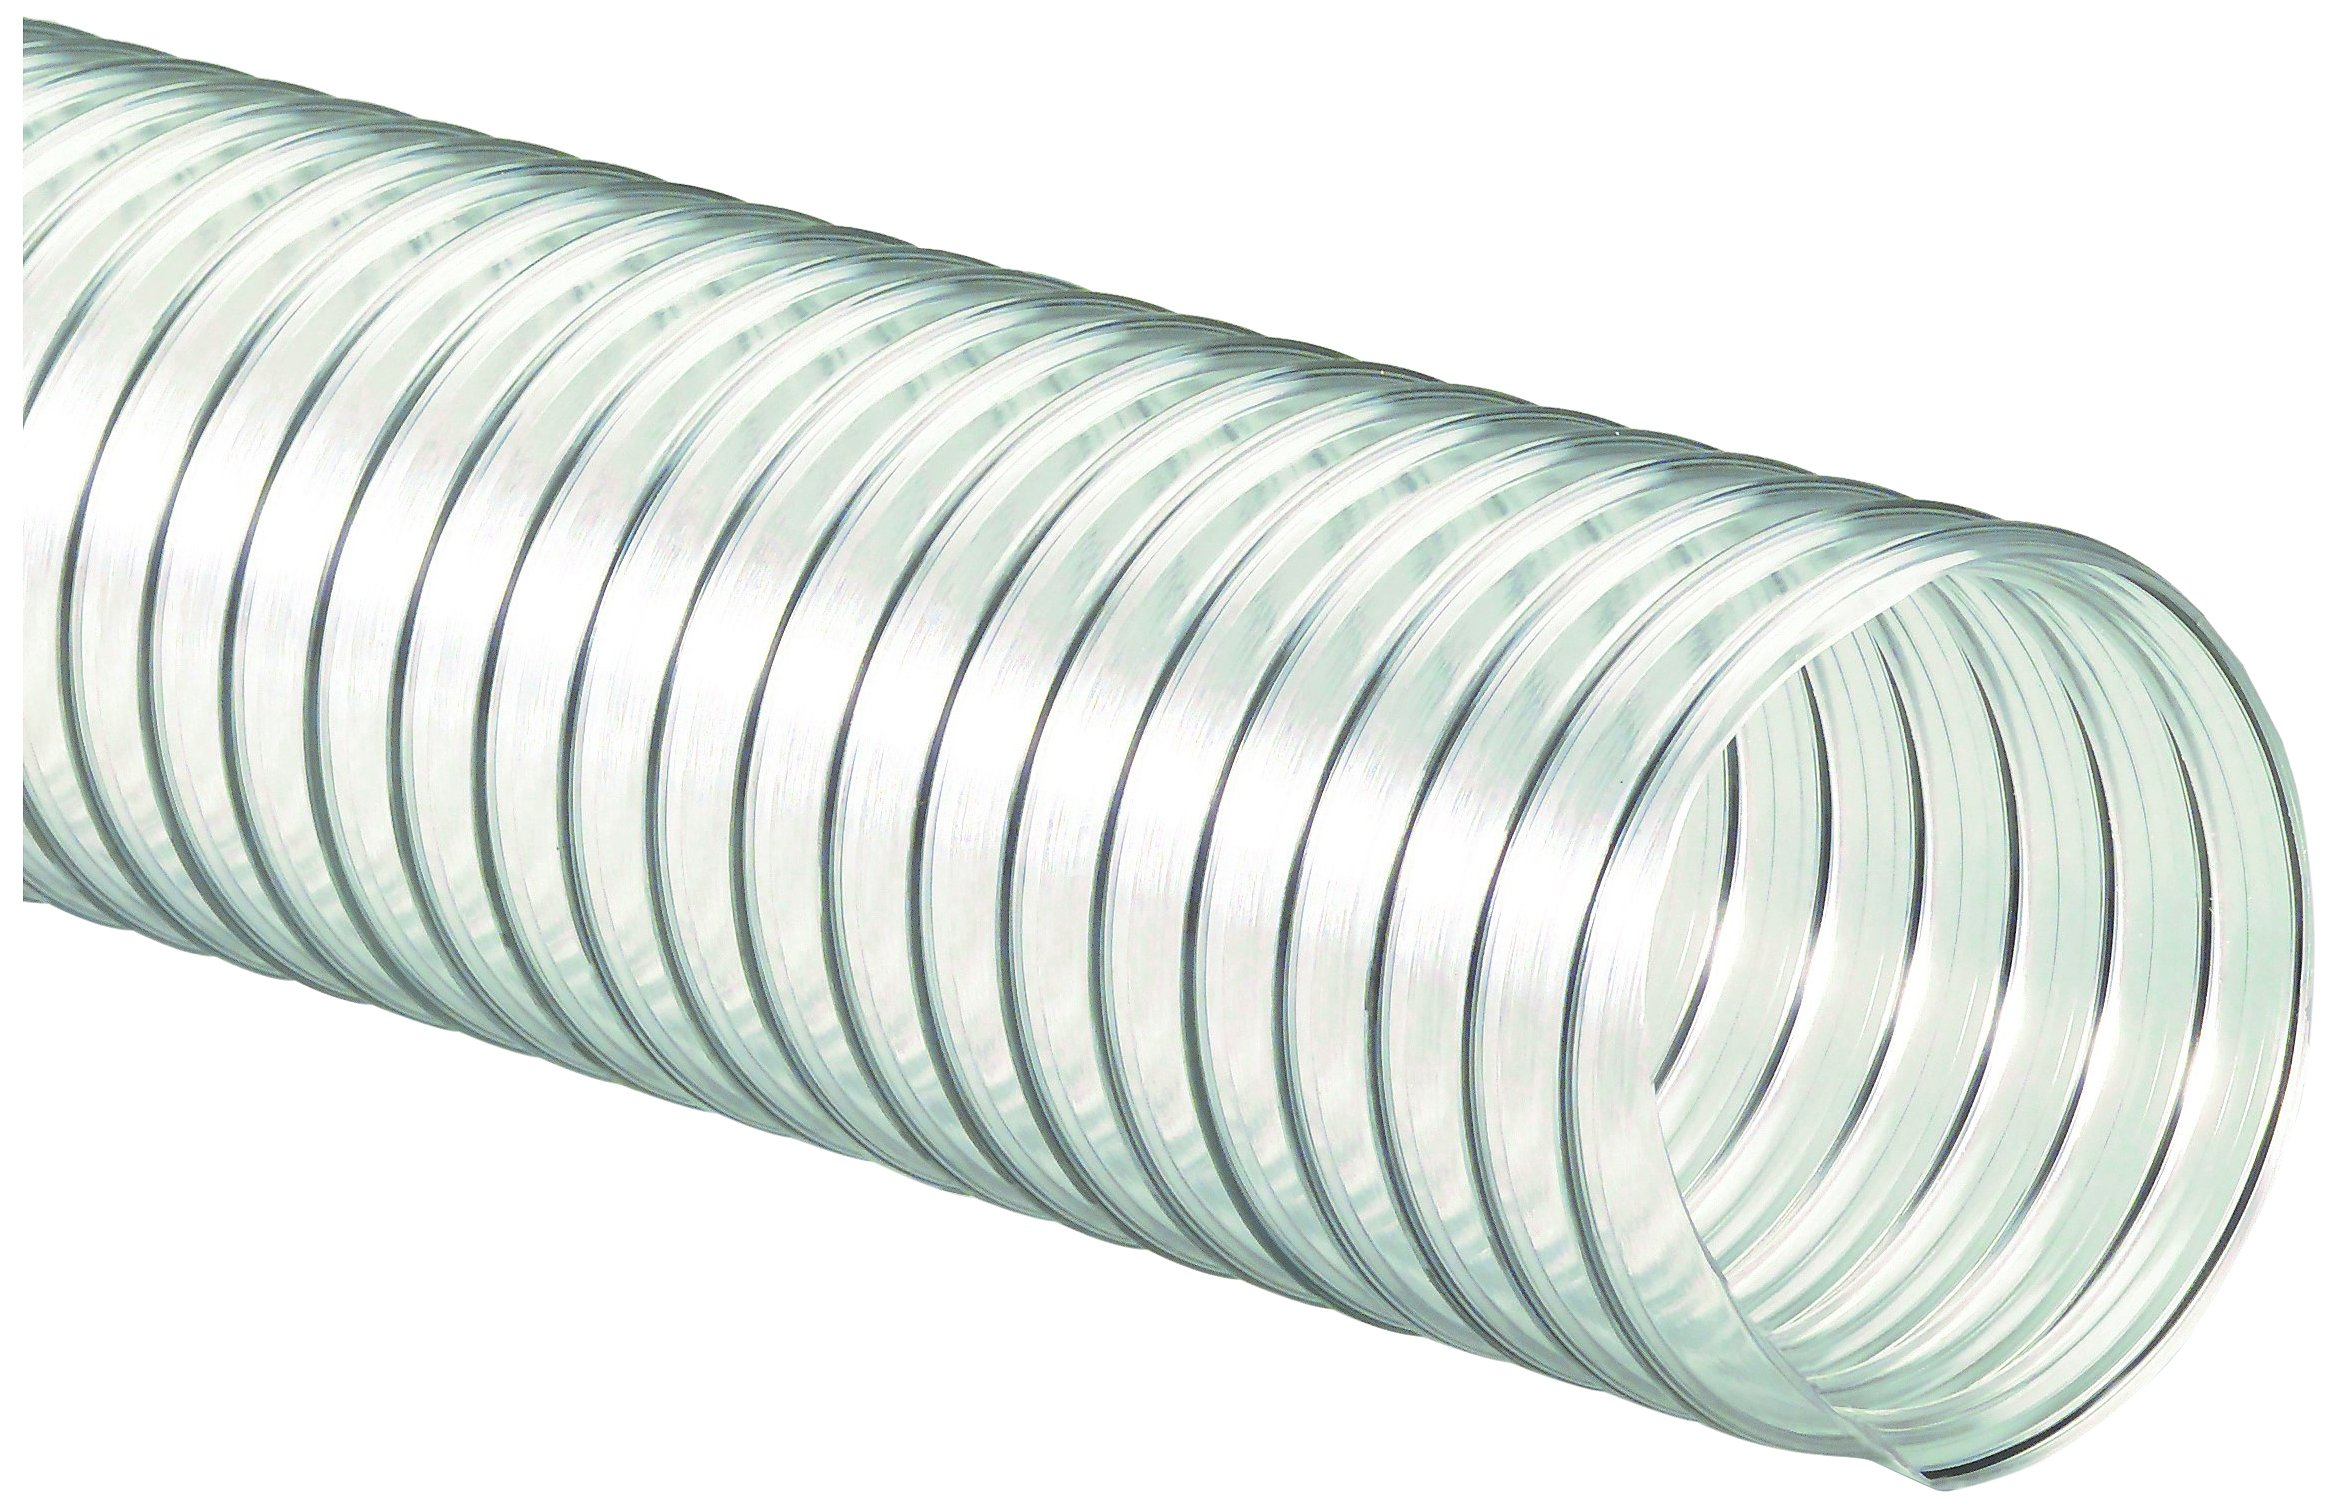 Flexaust 8171100025 R-4 PVC Flexible Hose, 160 degrees F, 25' Length, 10'' ID